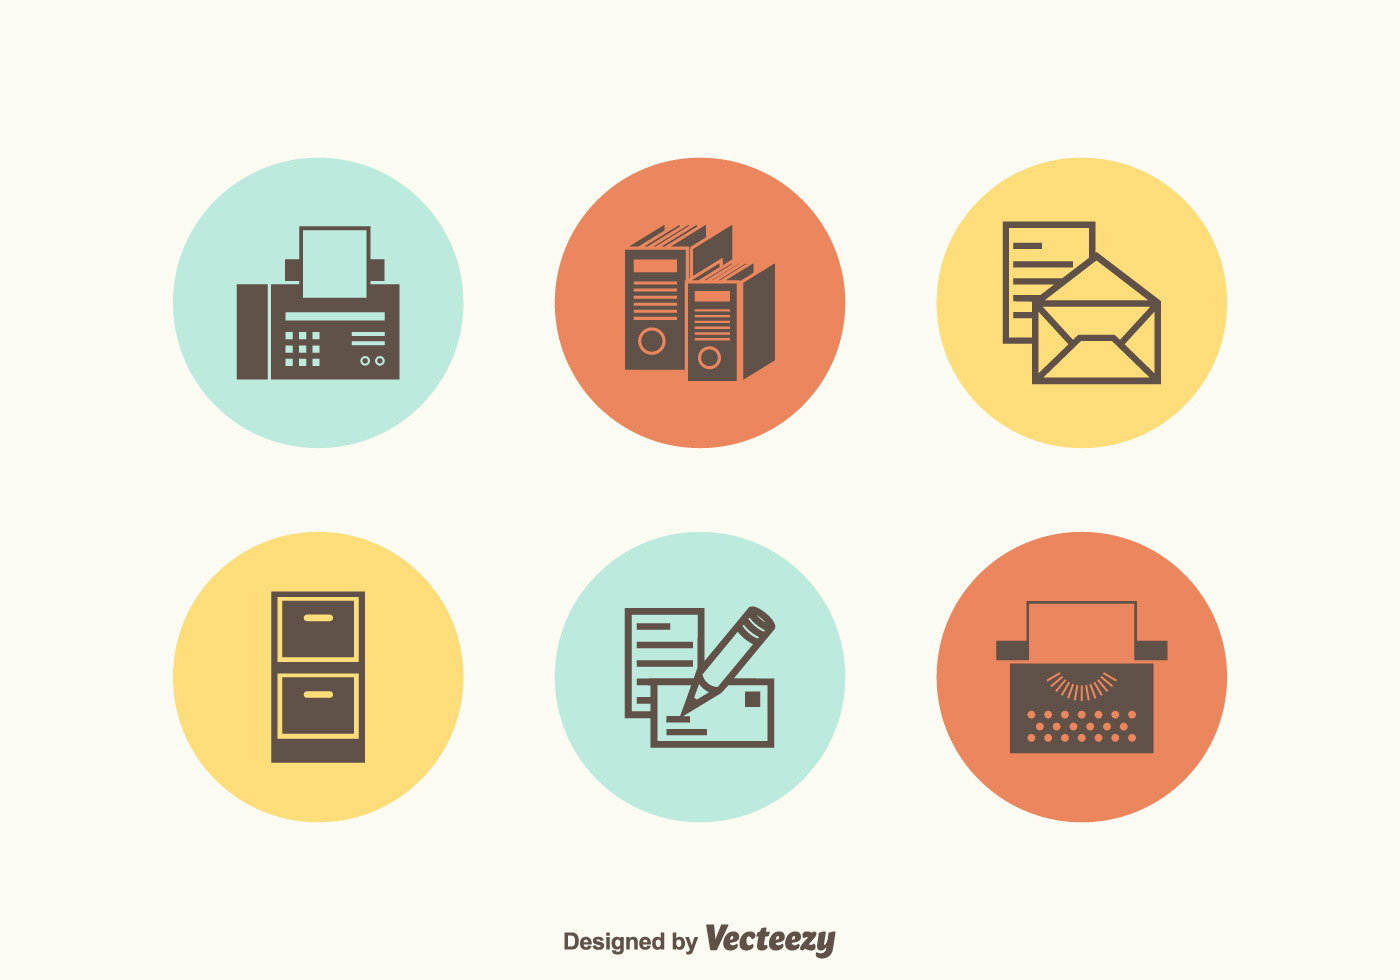 Beau Free Retro Office Supplies Vector Icons   Download Free Vector Art, Stock  Graphics U0026 Images